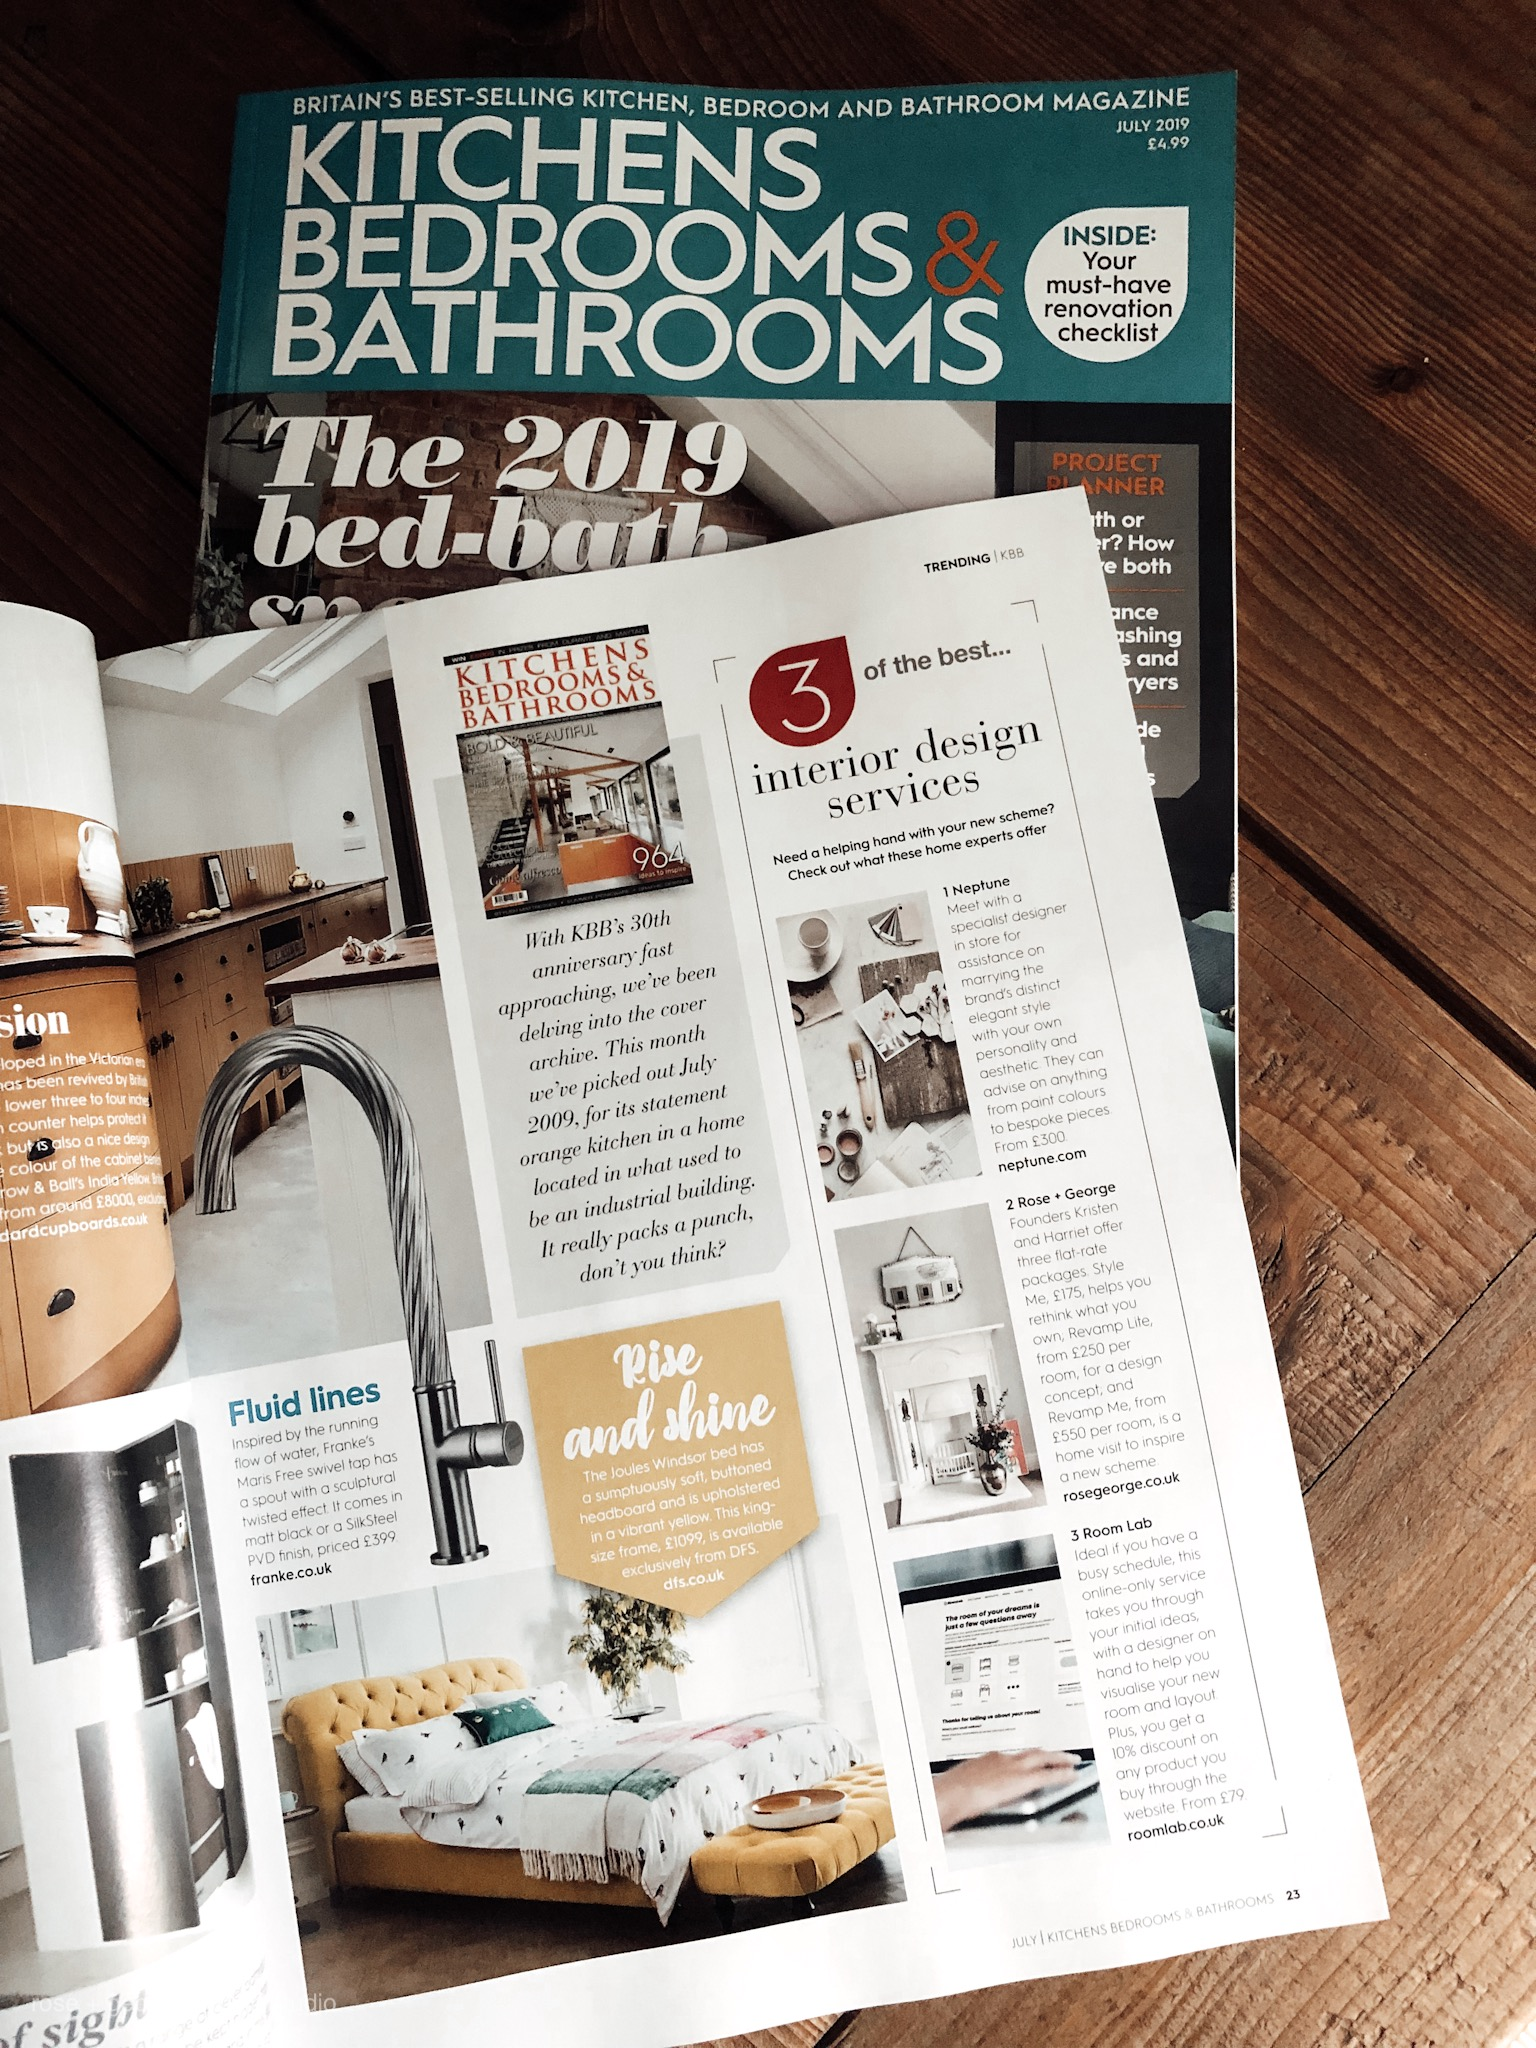 Kitchens Bedrooms & Bathrooms Magazine - Trending + News: July 2019 Issue